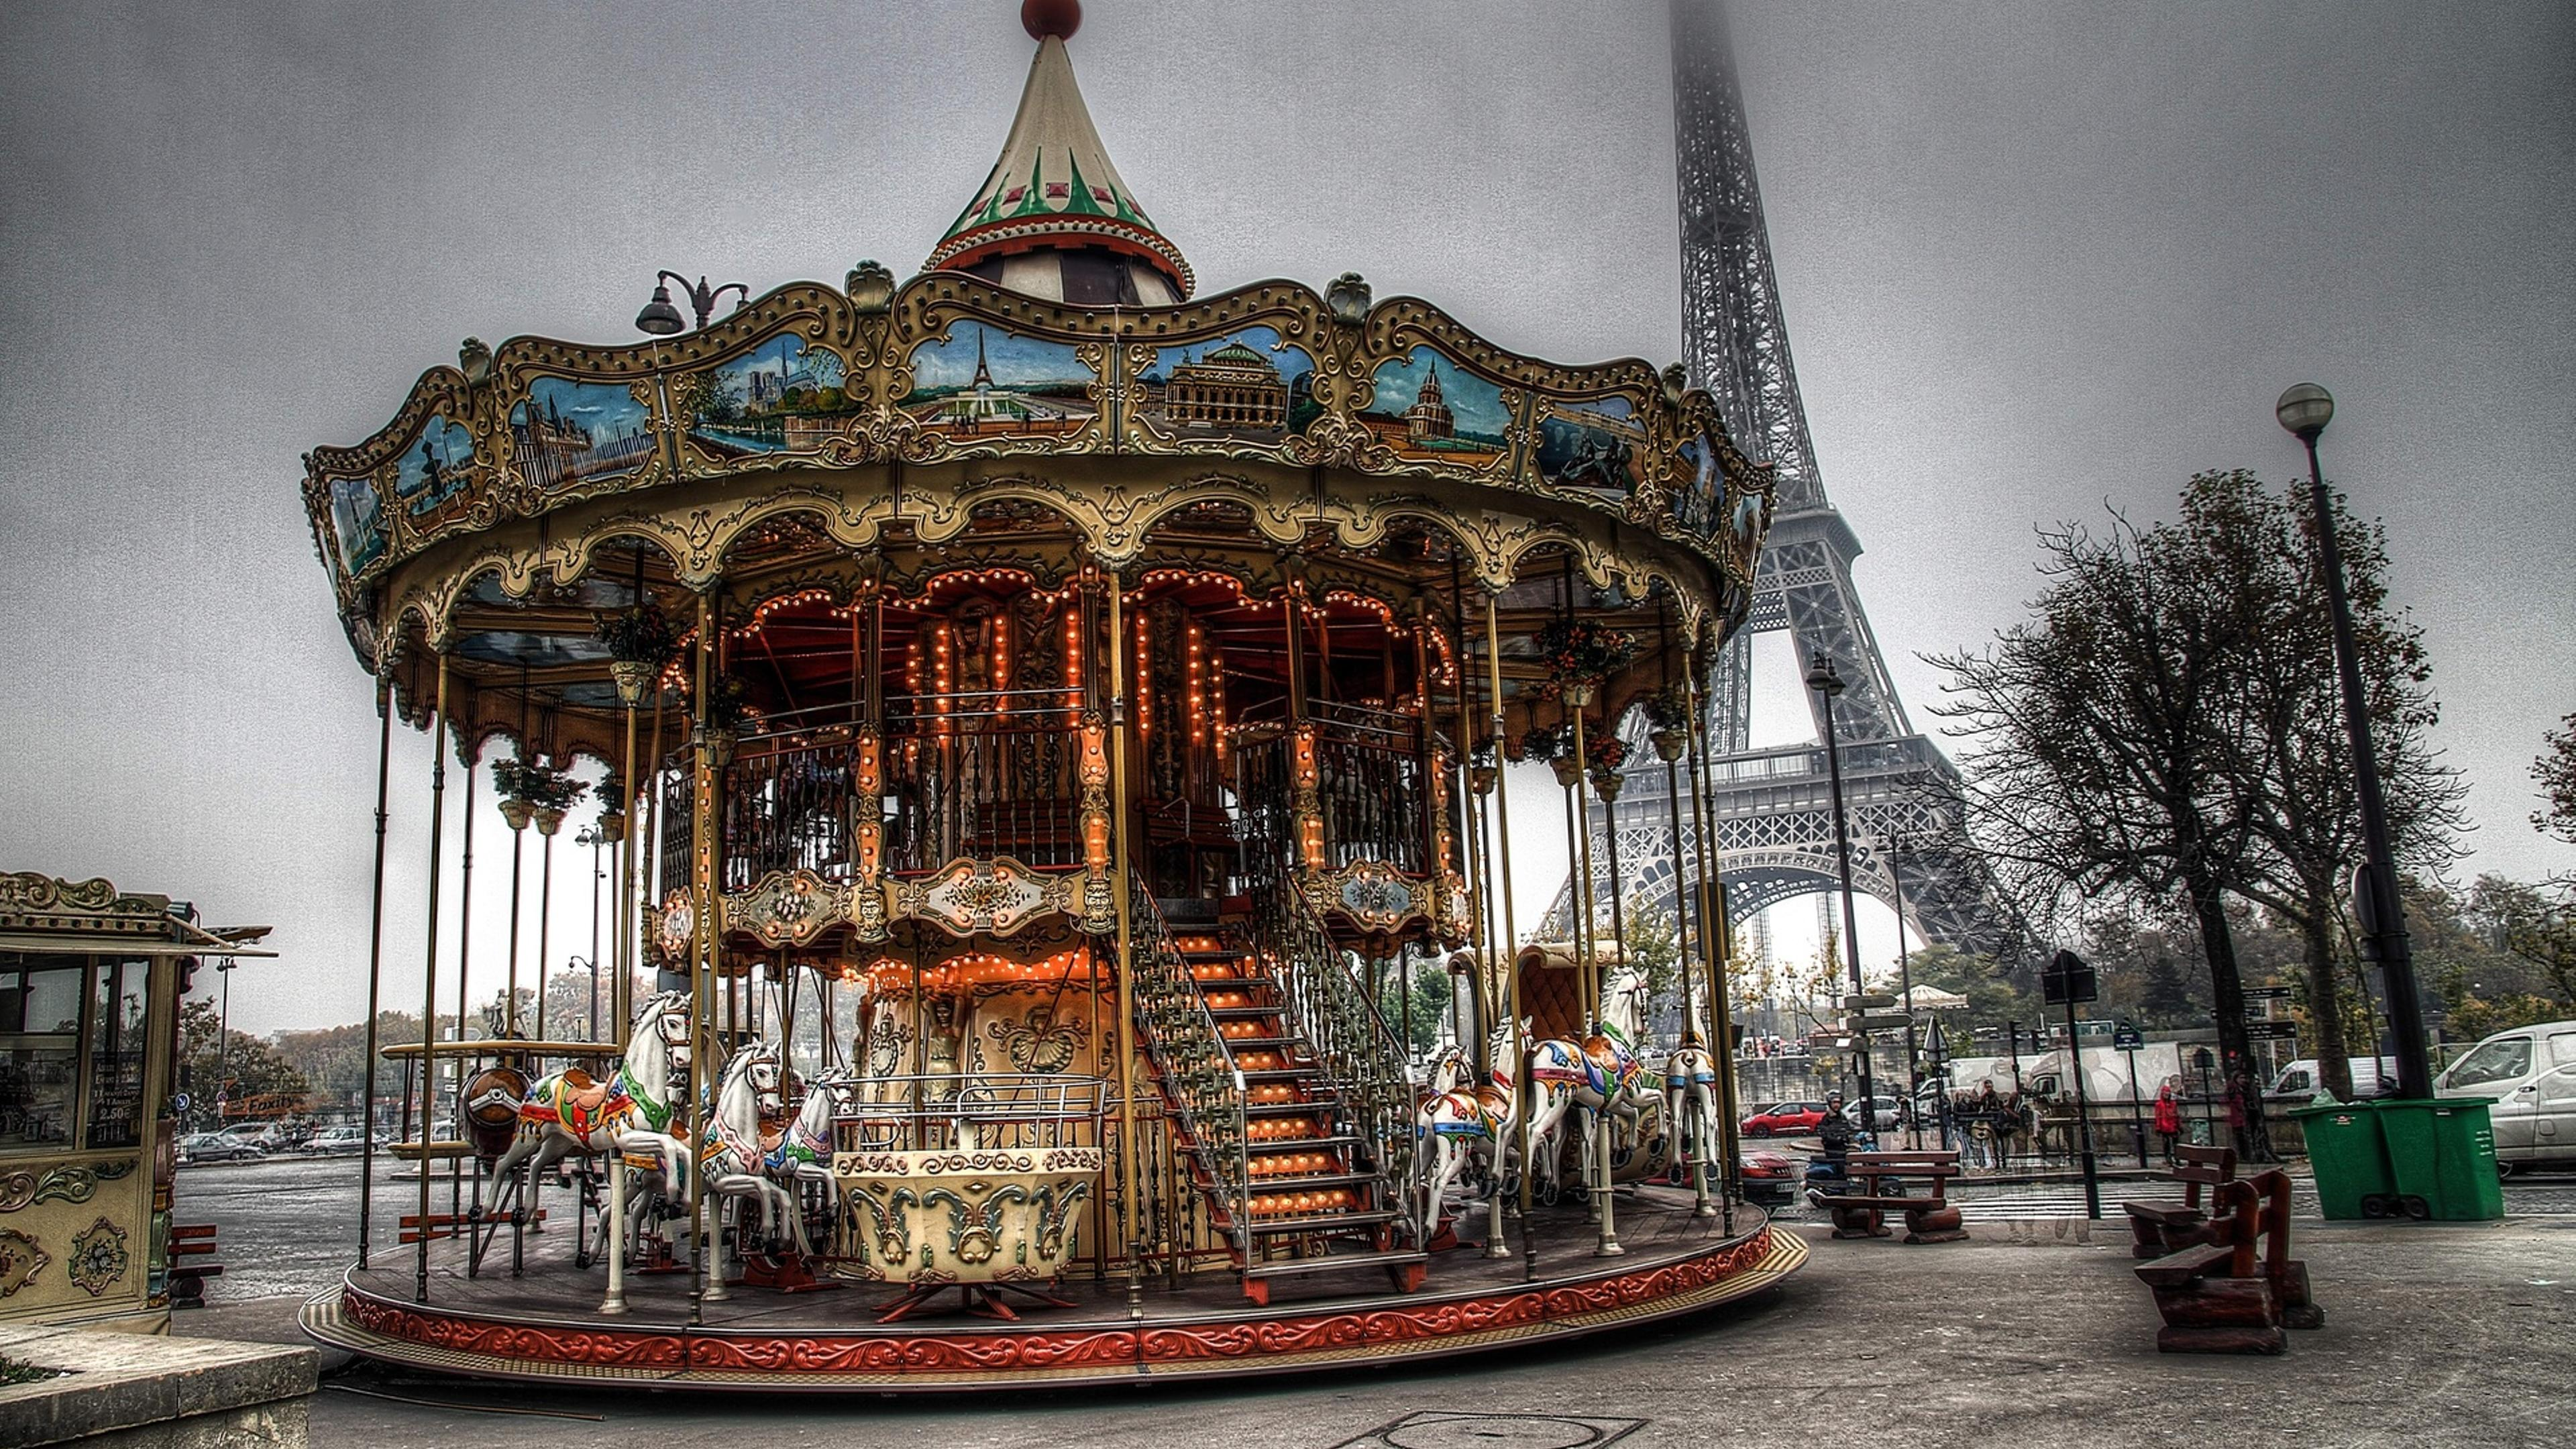 Carousel Near Eiffel Tower Wallpaper Download 3840x2160